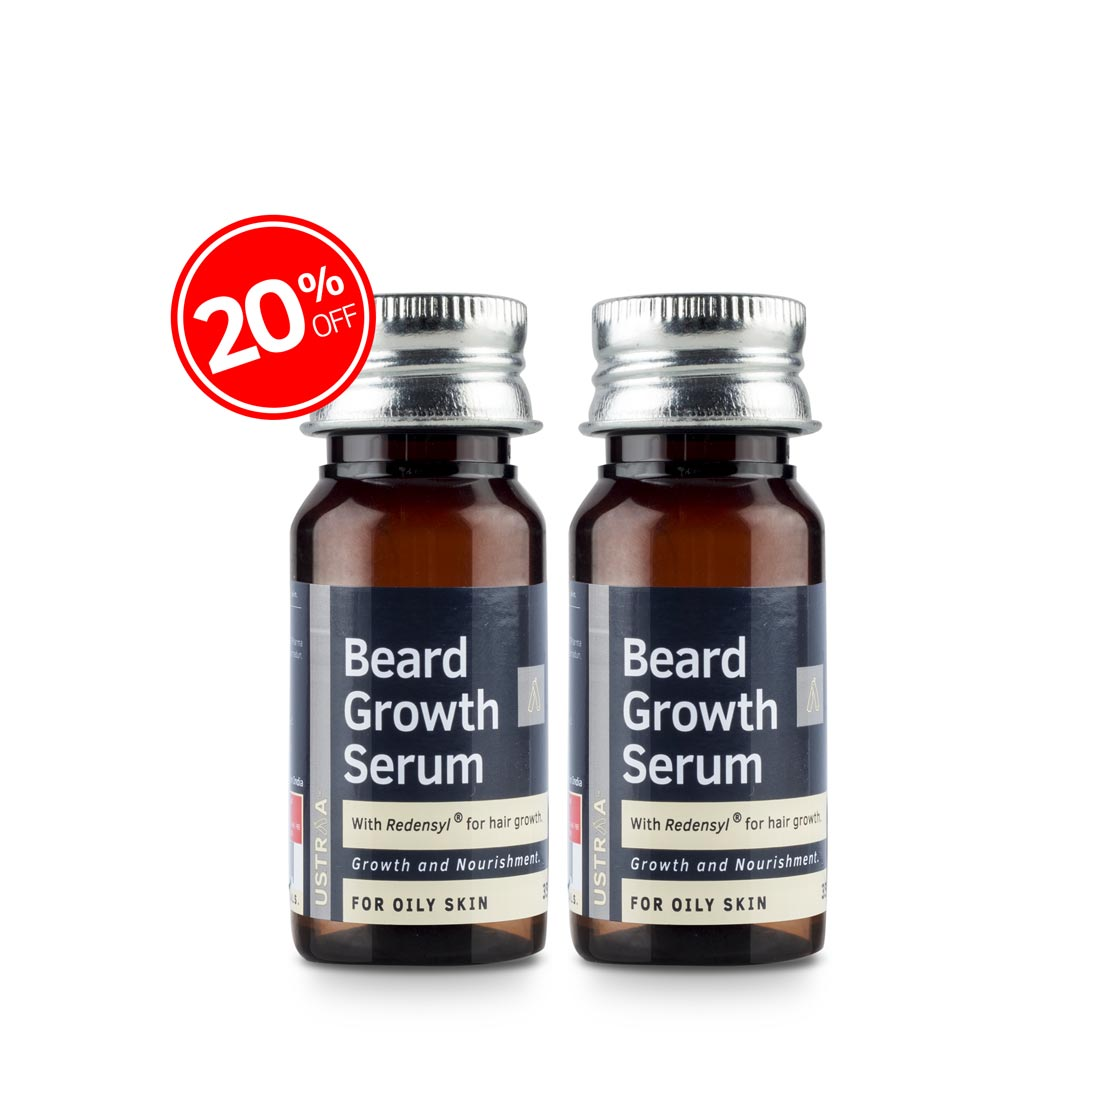 Beard Growth Serum (For Oily Skin) - Set of 2